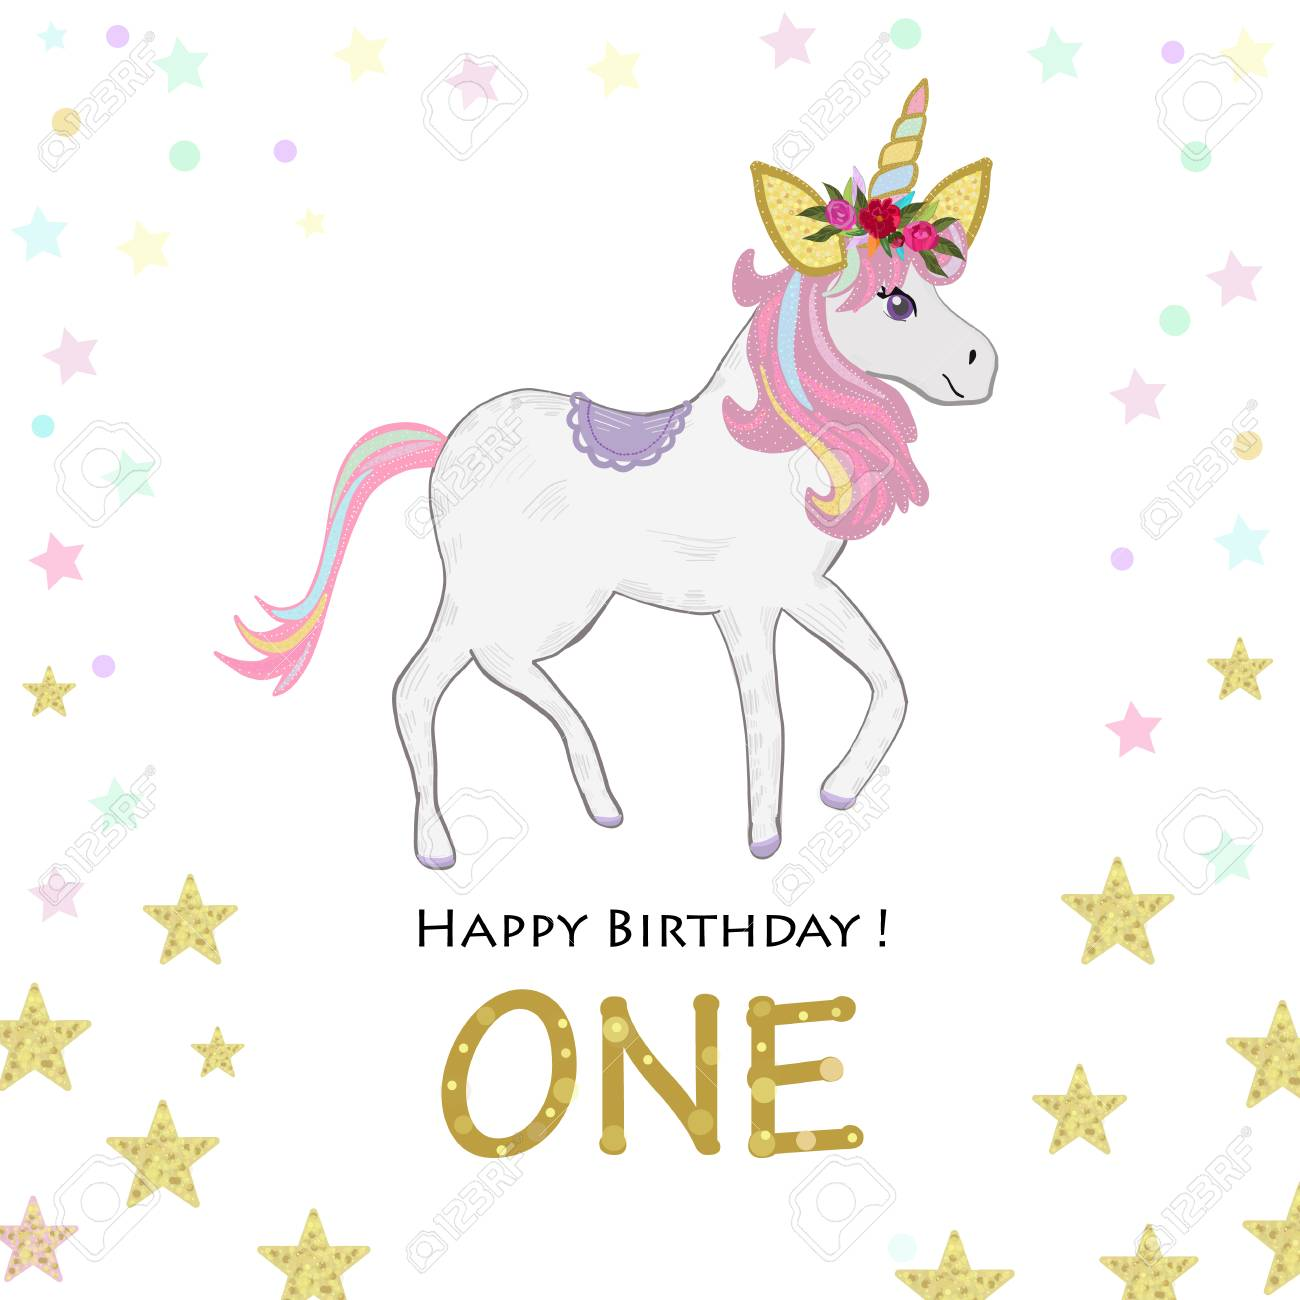 Birthday Greeting Card Design For One Year Old Template Stock Vector